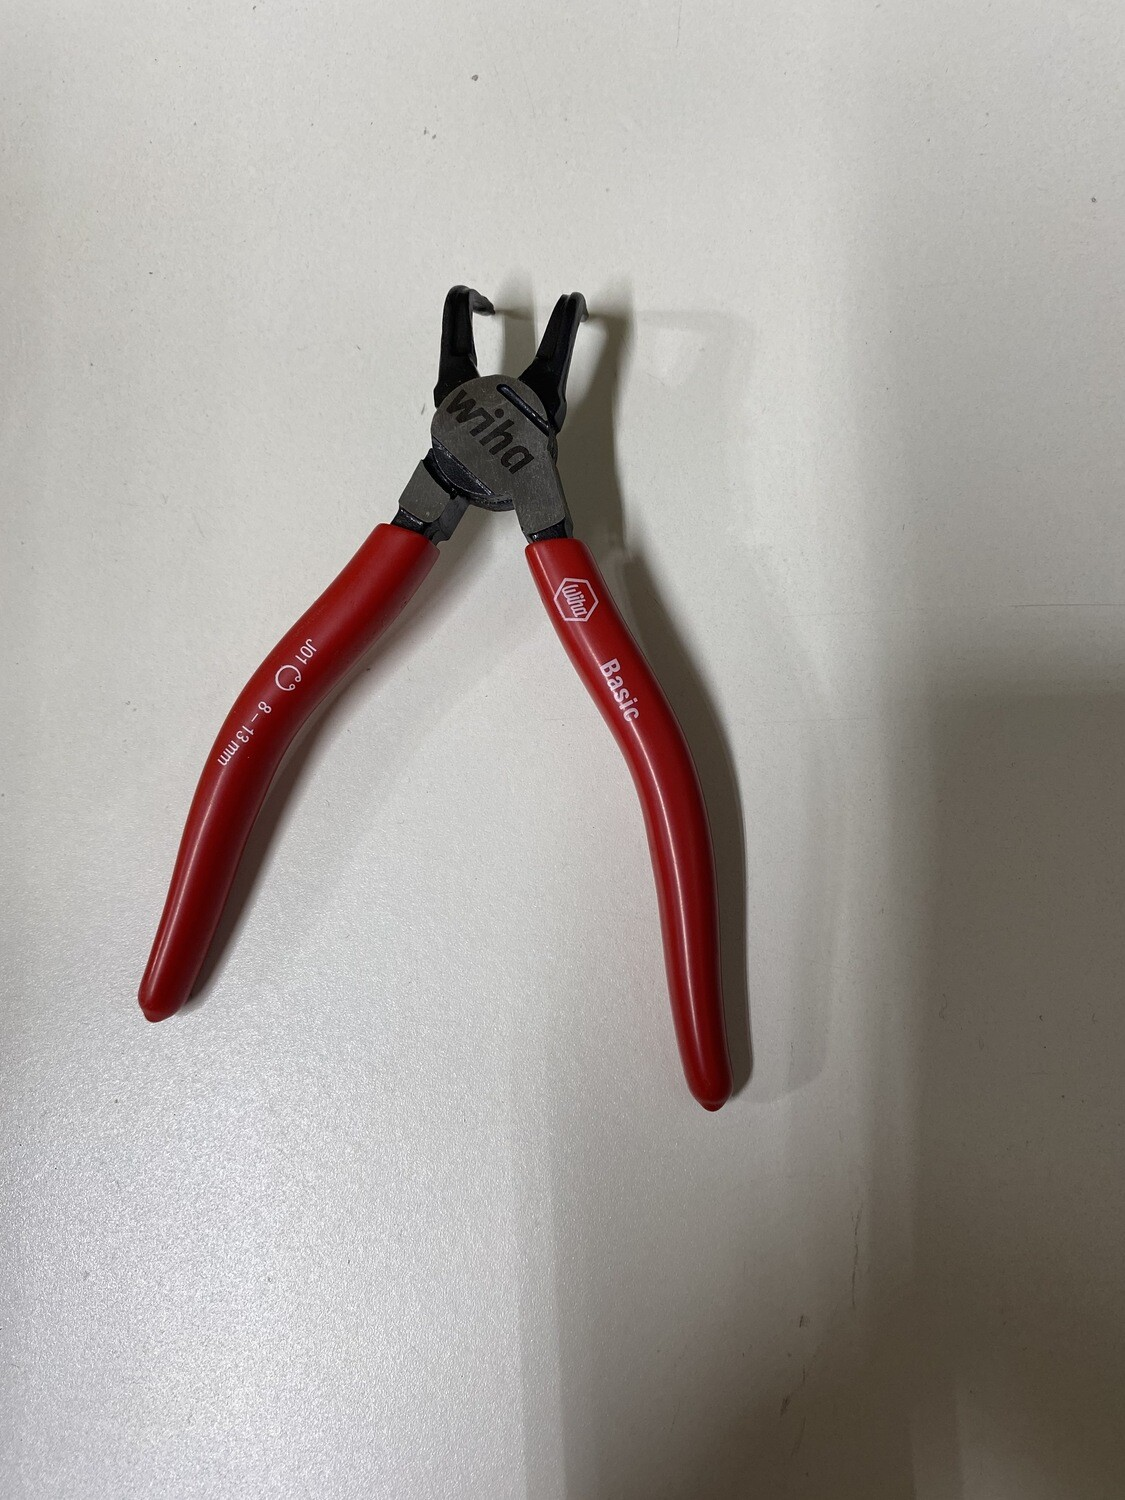 Snap Ring Pliers (out of stock)